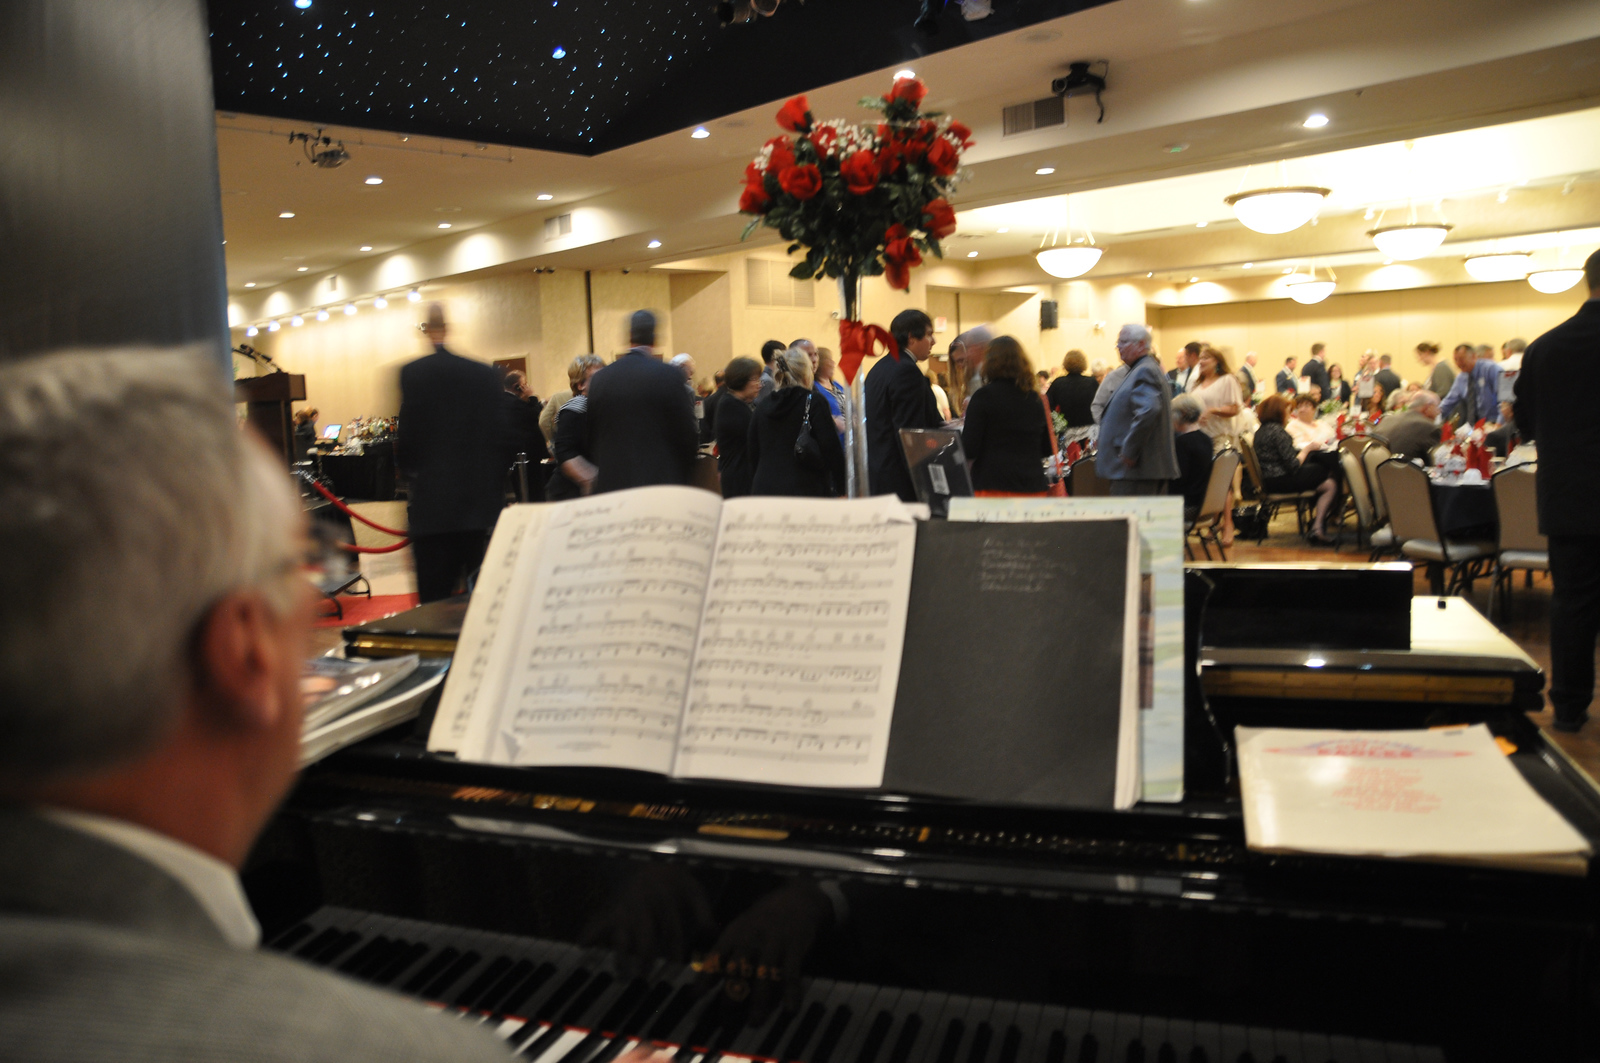 ASHLEY FOX / GAZETTE Treasurer John Burke plays the piano for a crowd of 192 people at The Rosie Awards Wednesday evening, a gig he performs every year.